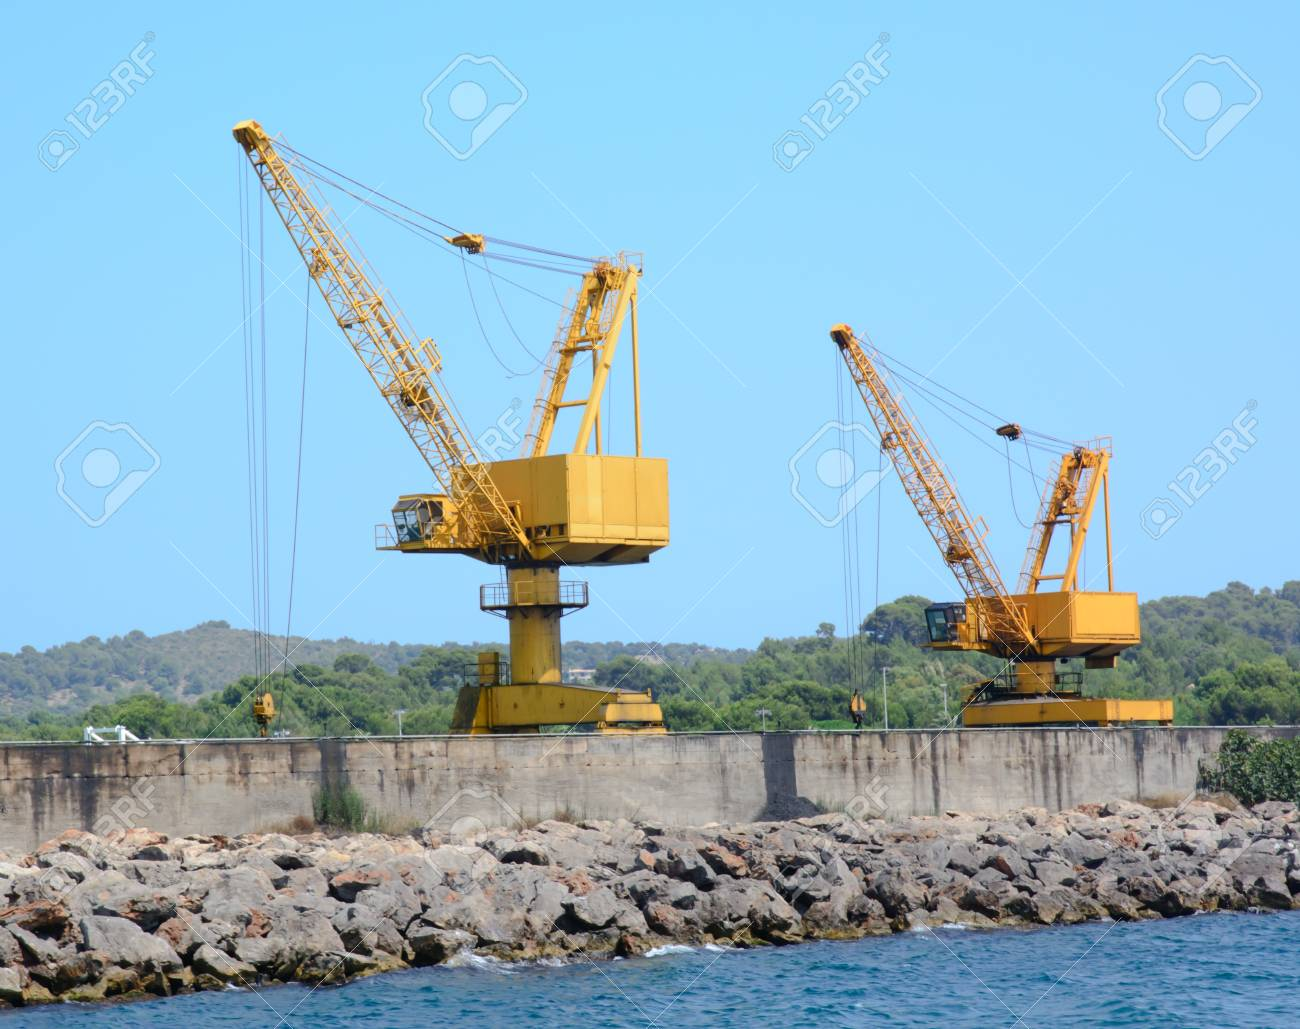 Two yellow industrial cranes on a jetty Stock Photo - 21452097